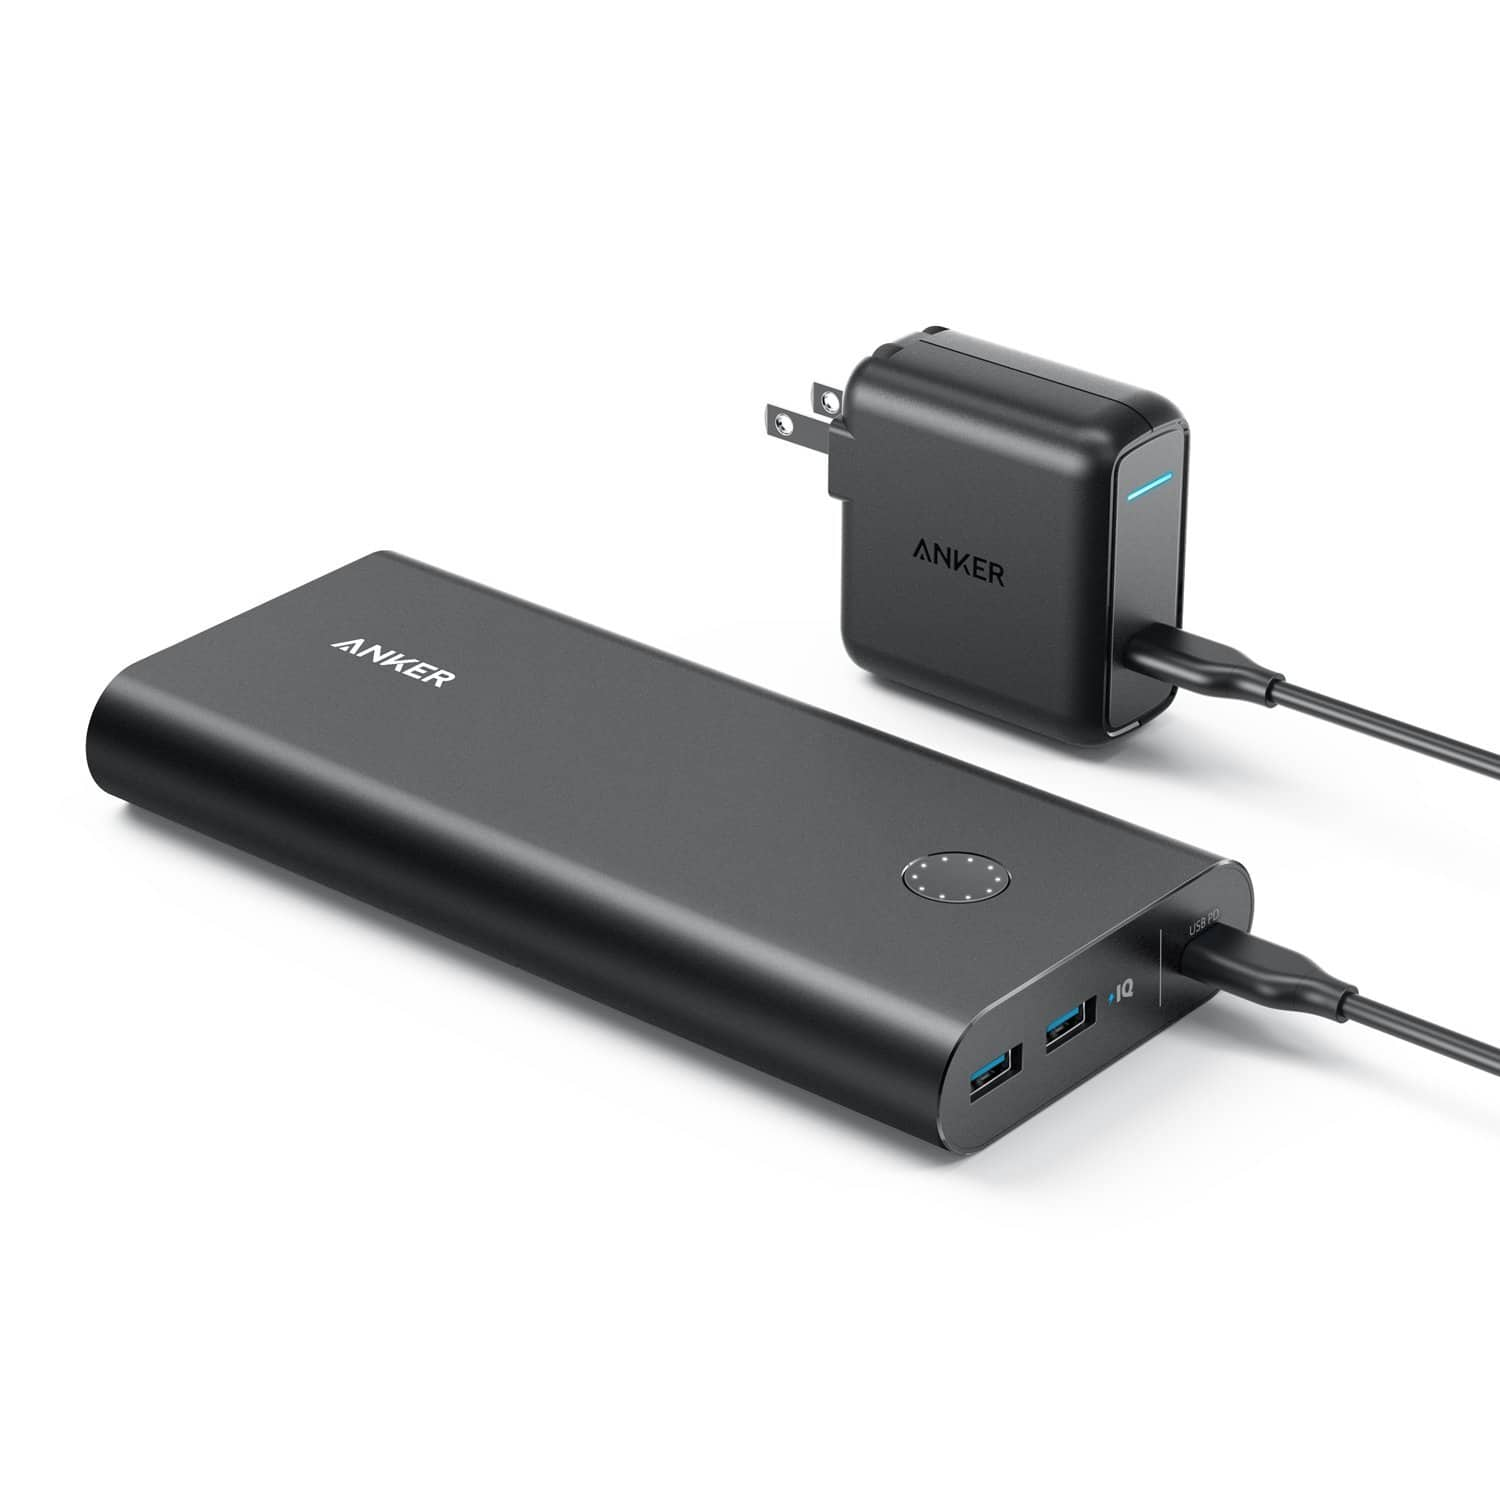 Anker PowerCore+ 26800 PD with 27W PD Portable Charger Bundle USB Type-C for $88 with promo code on Amazon.